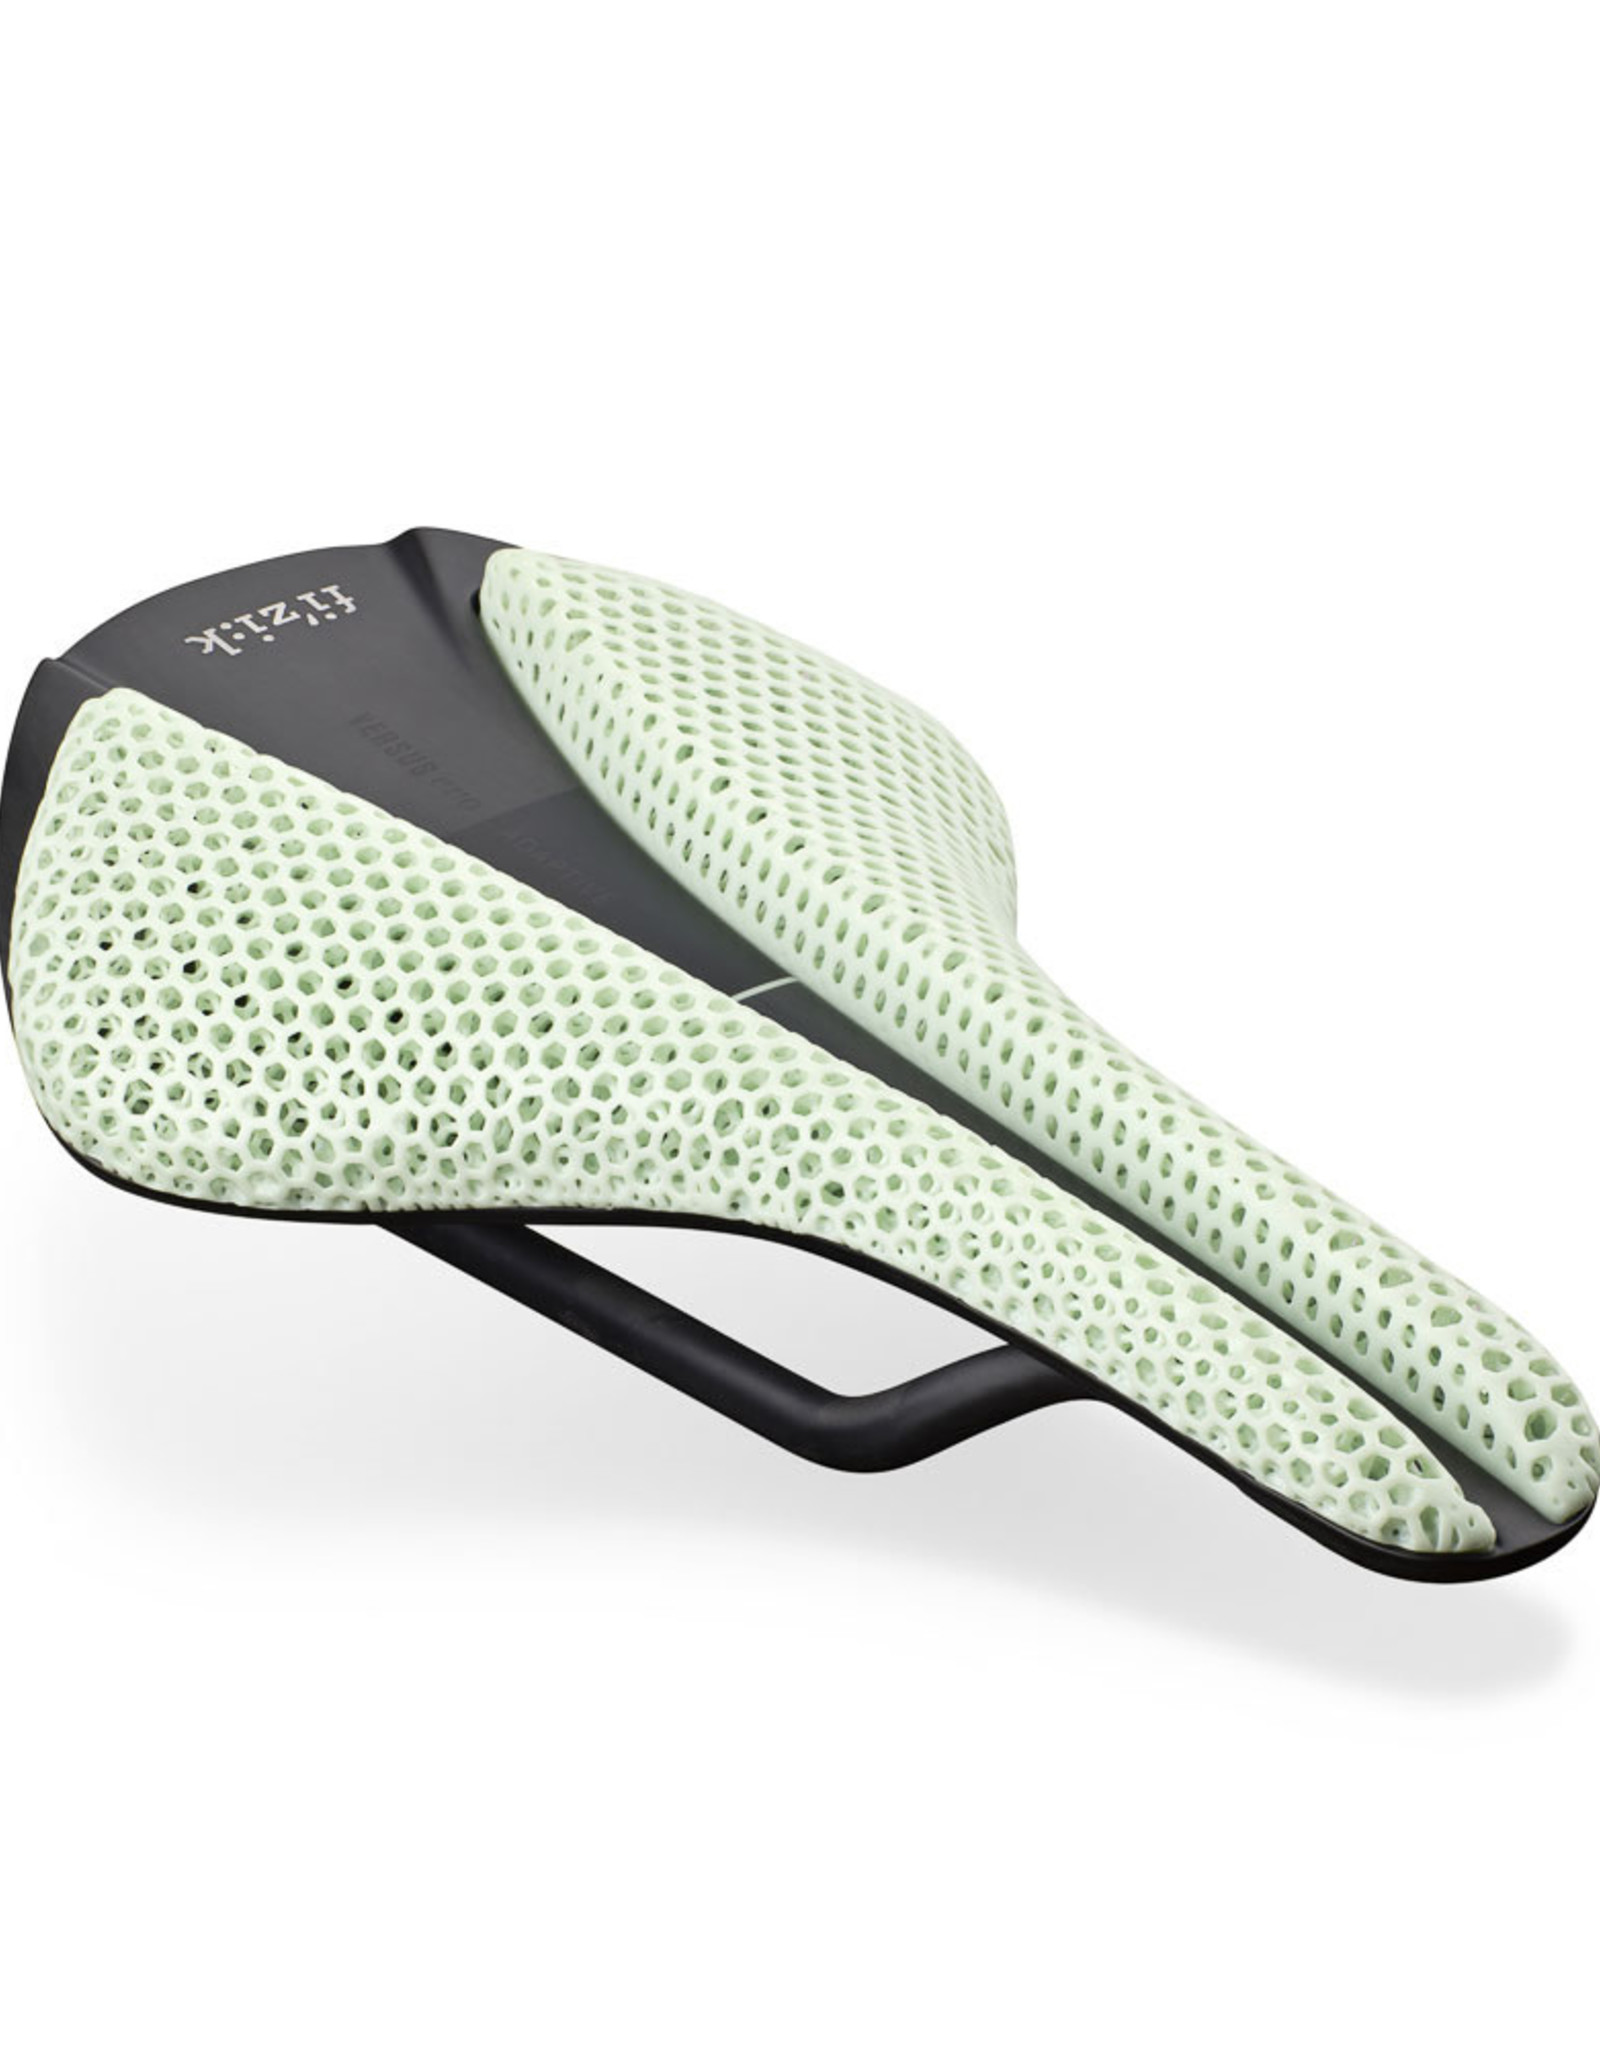 Fizik - Adaptive Evo 00 - Saddle - Regular